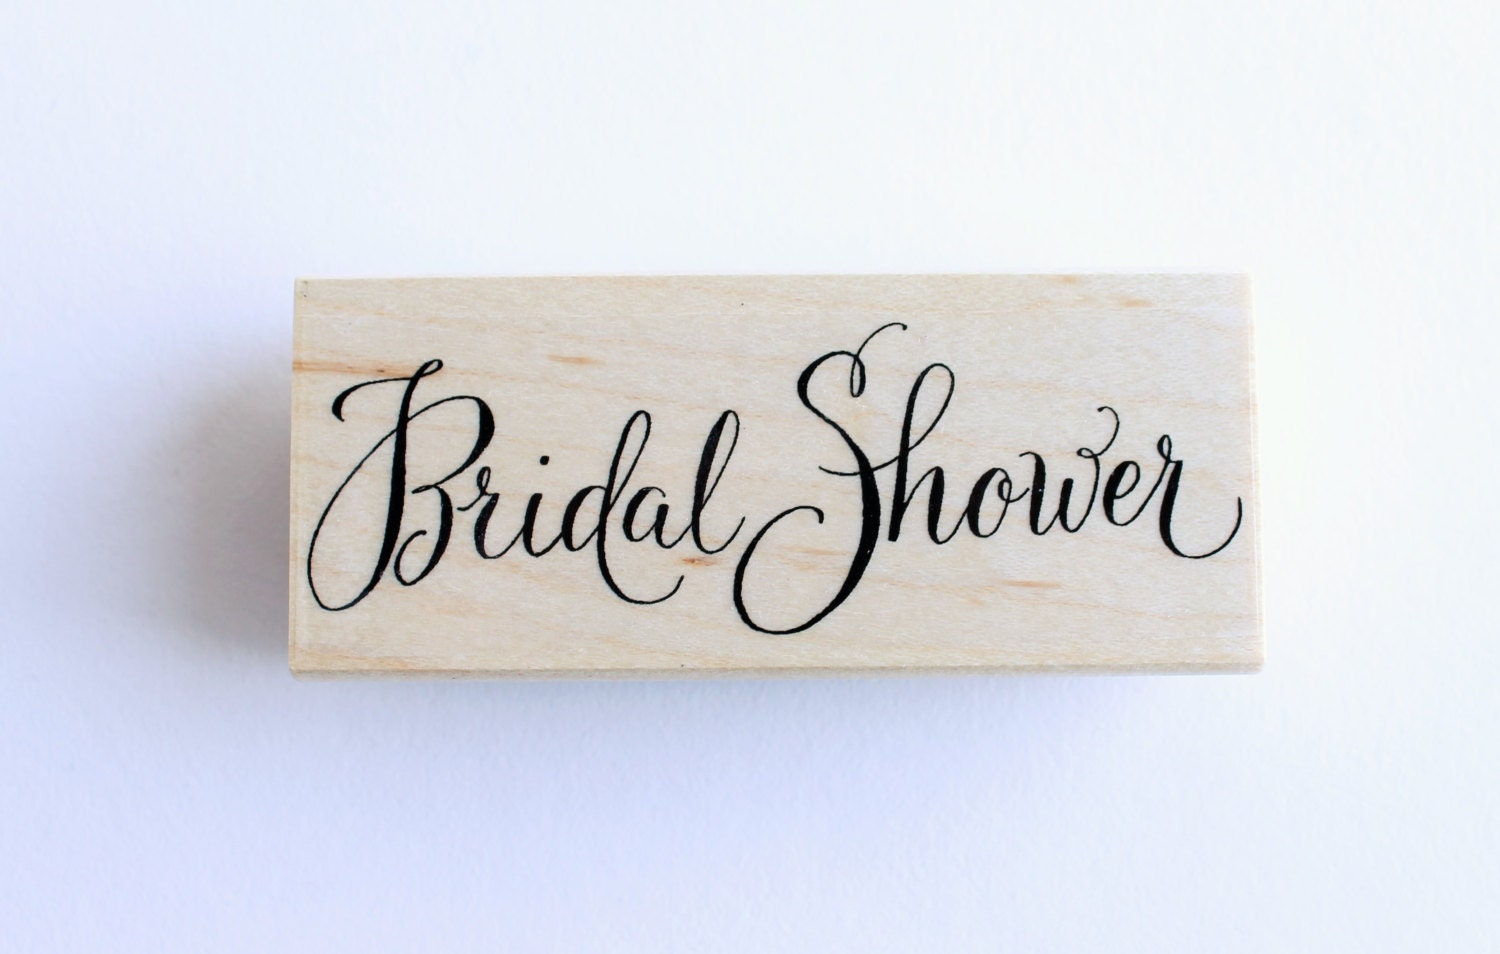 Bridal shower hand lettered rubber stamp wedding for Wedding dress rubber stamp